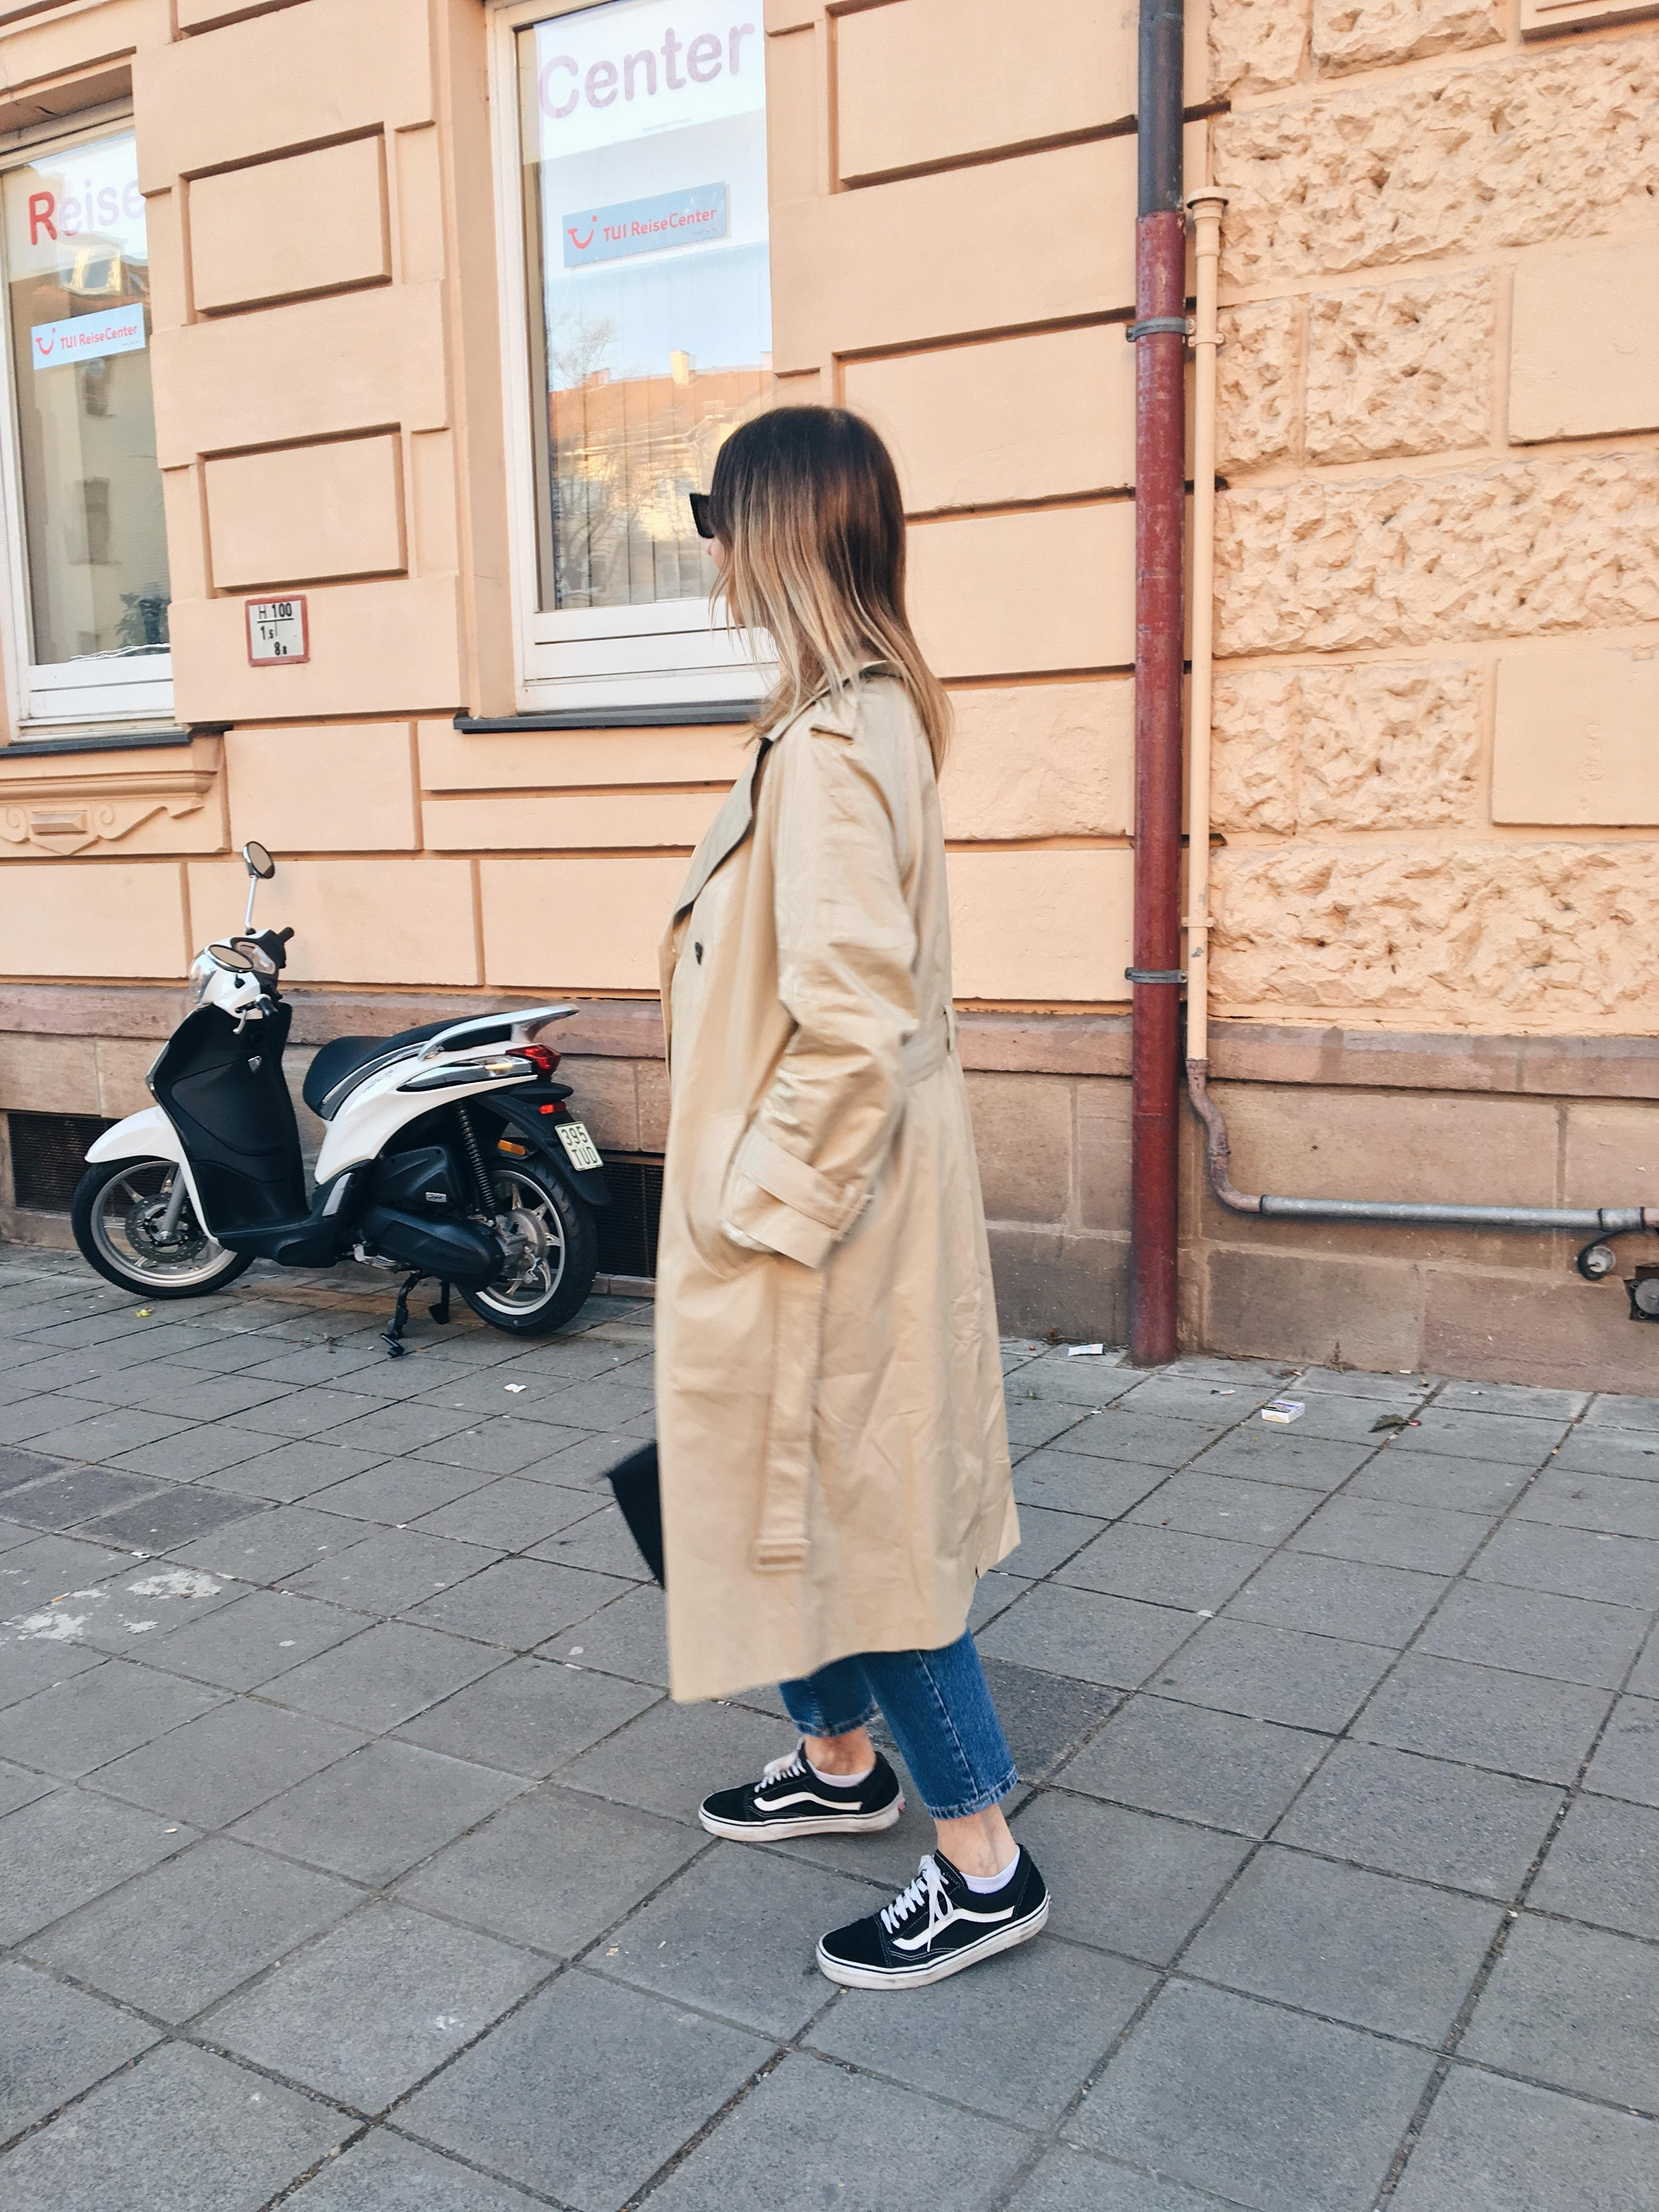 Hello spring  trenchcoat hm trend fashion ootd fashionblogger streetstyle springoutfit  b4f7a6f4 9306 42d1 85df aa6c474ab2e2